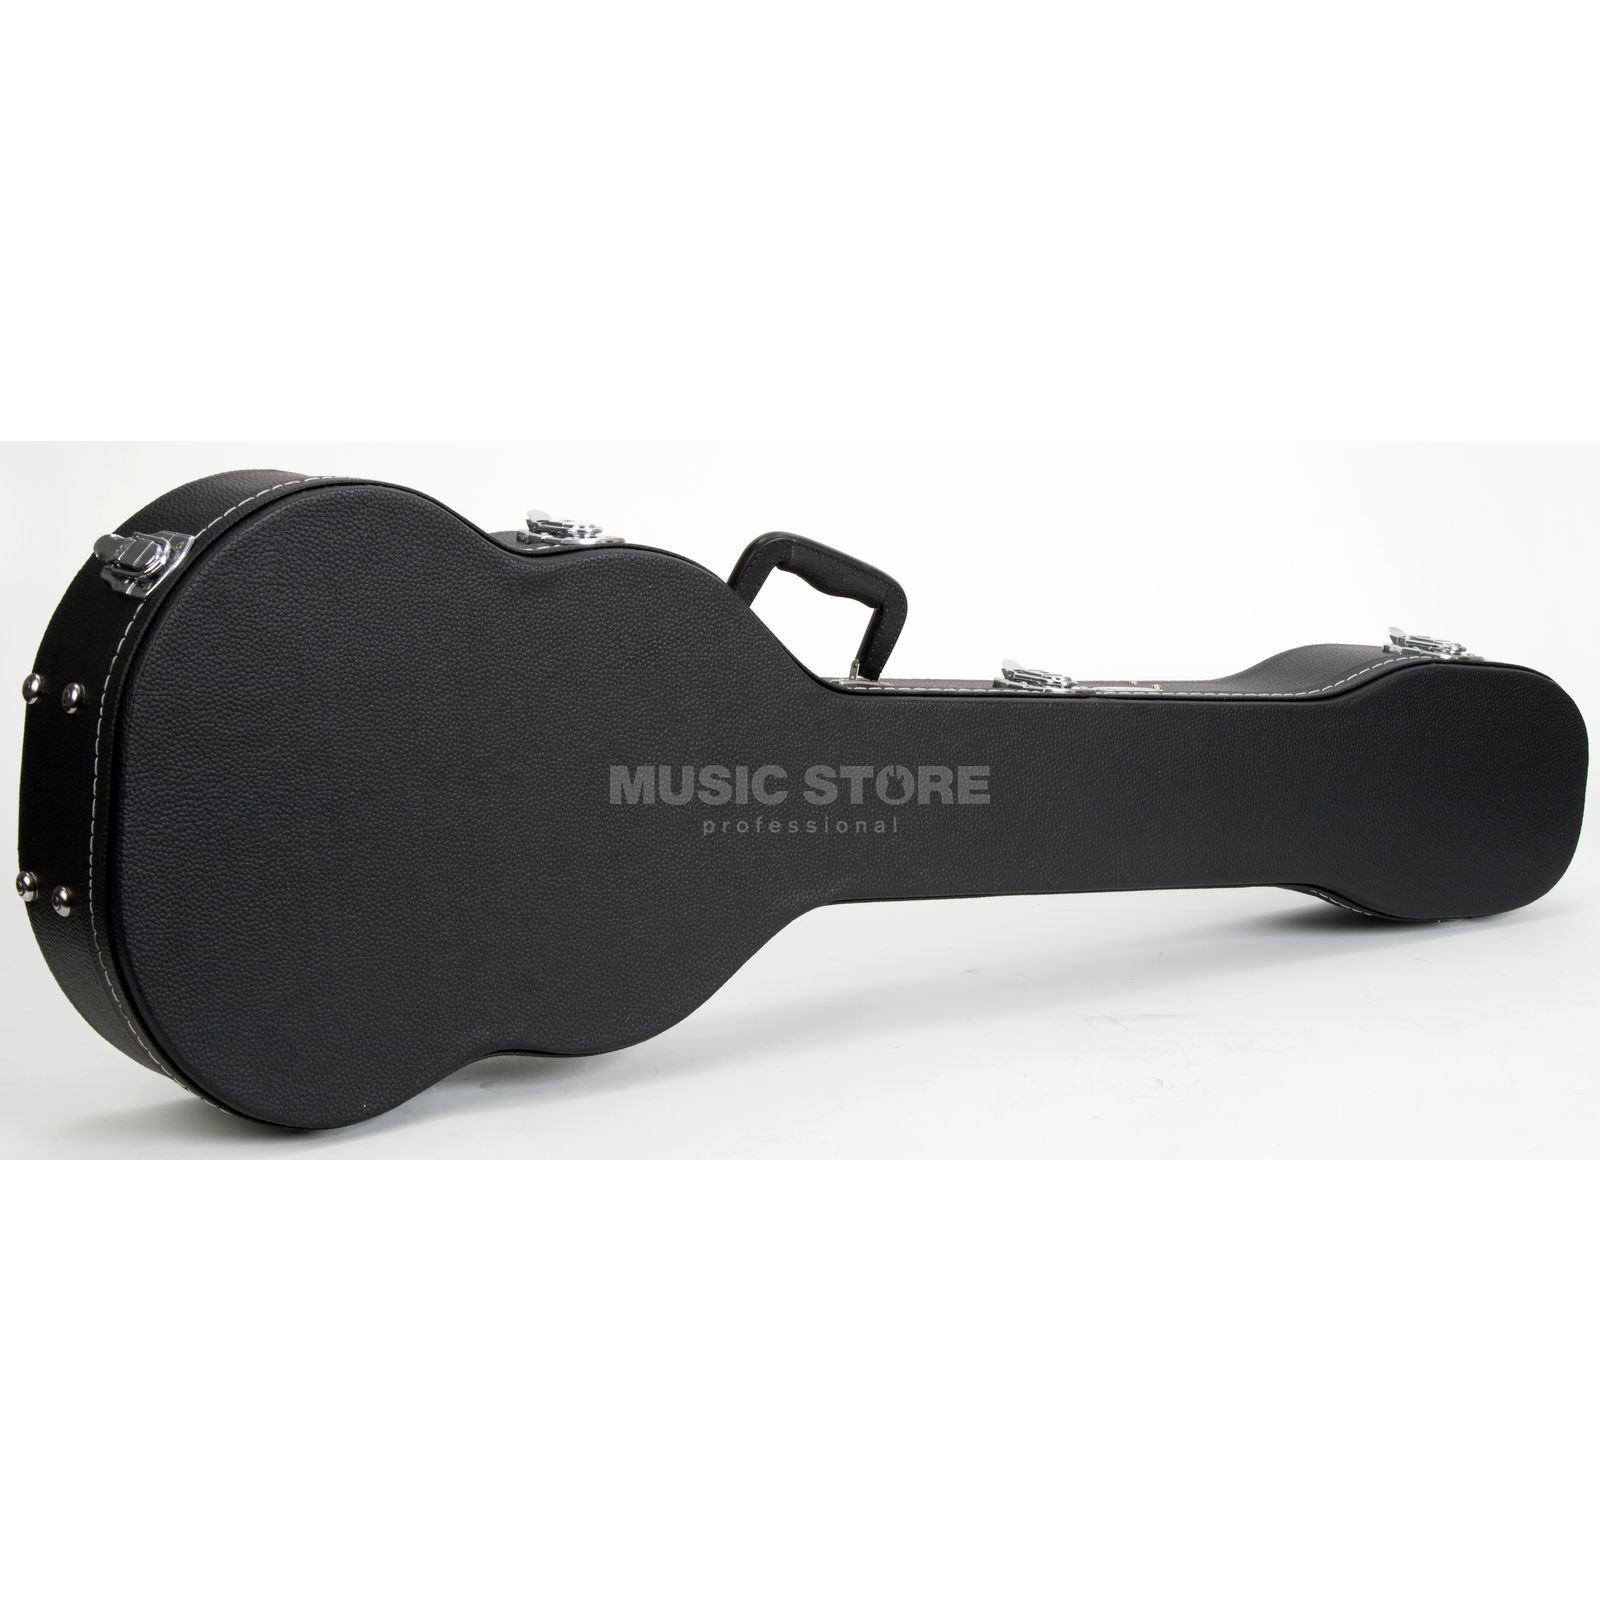 Rockcase Beatle Bass Case - interior: 112x26 /30x10 cm Product Image